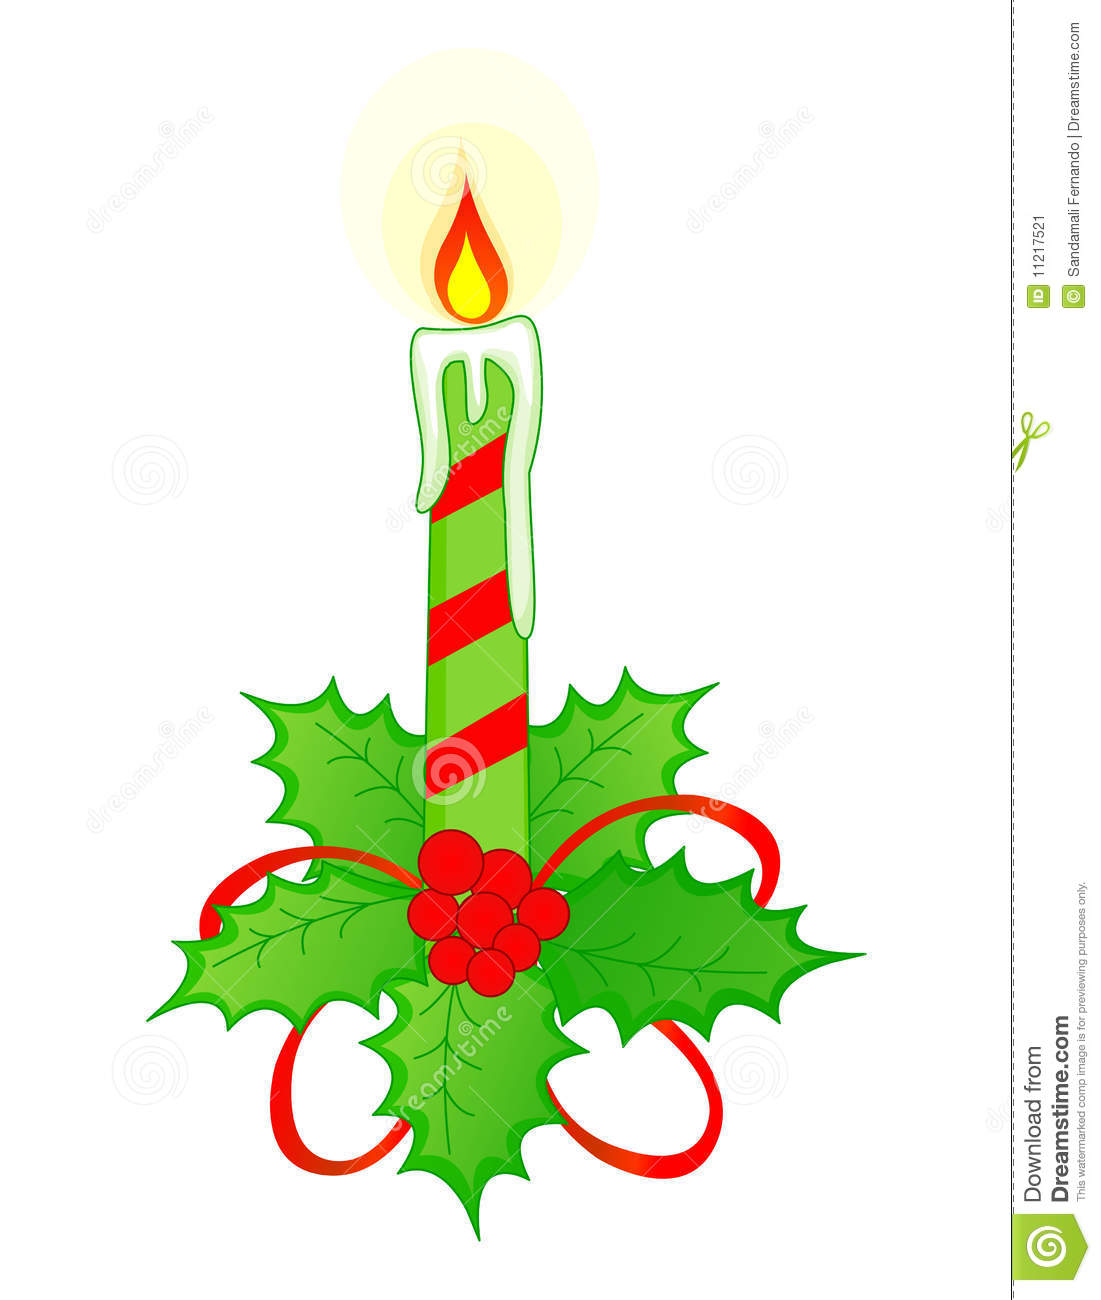 Christ Candle Clipart - Clipart Kid